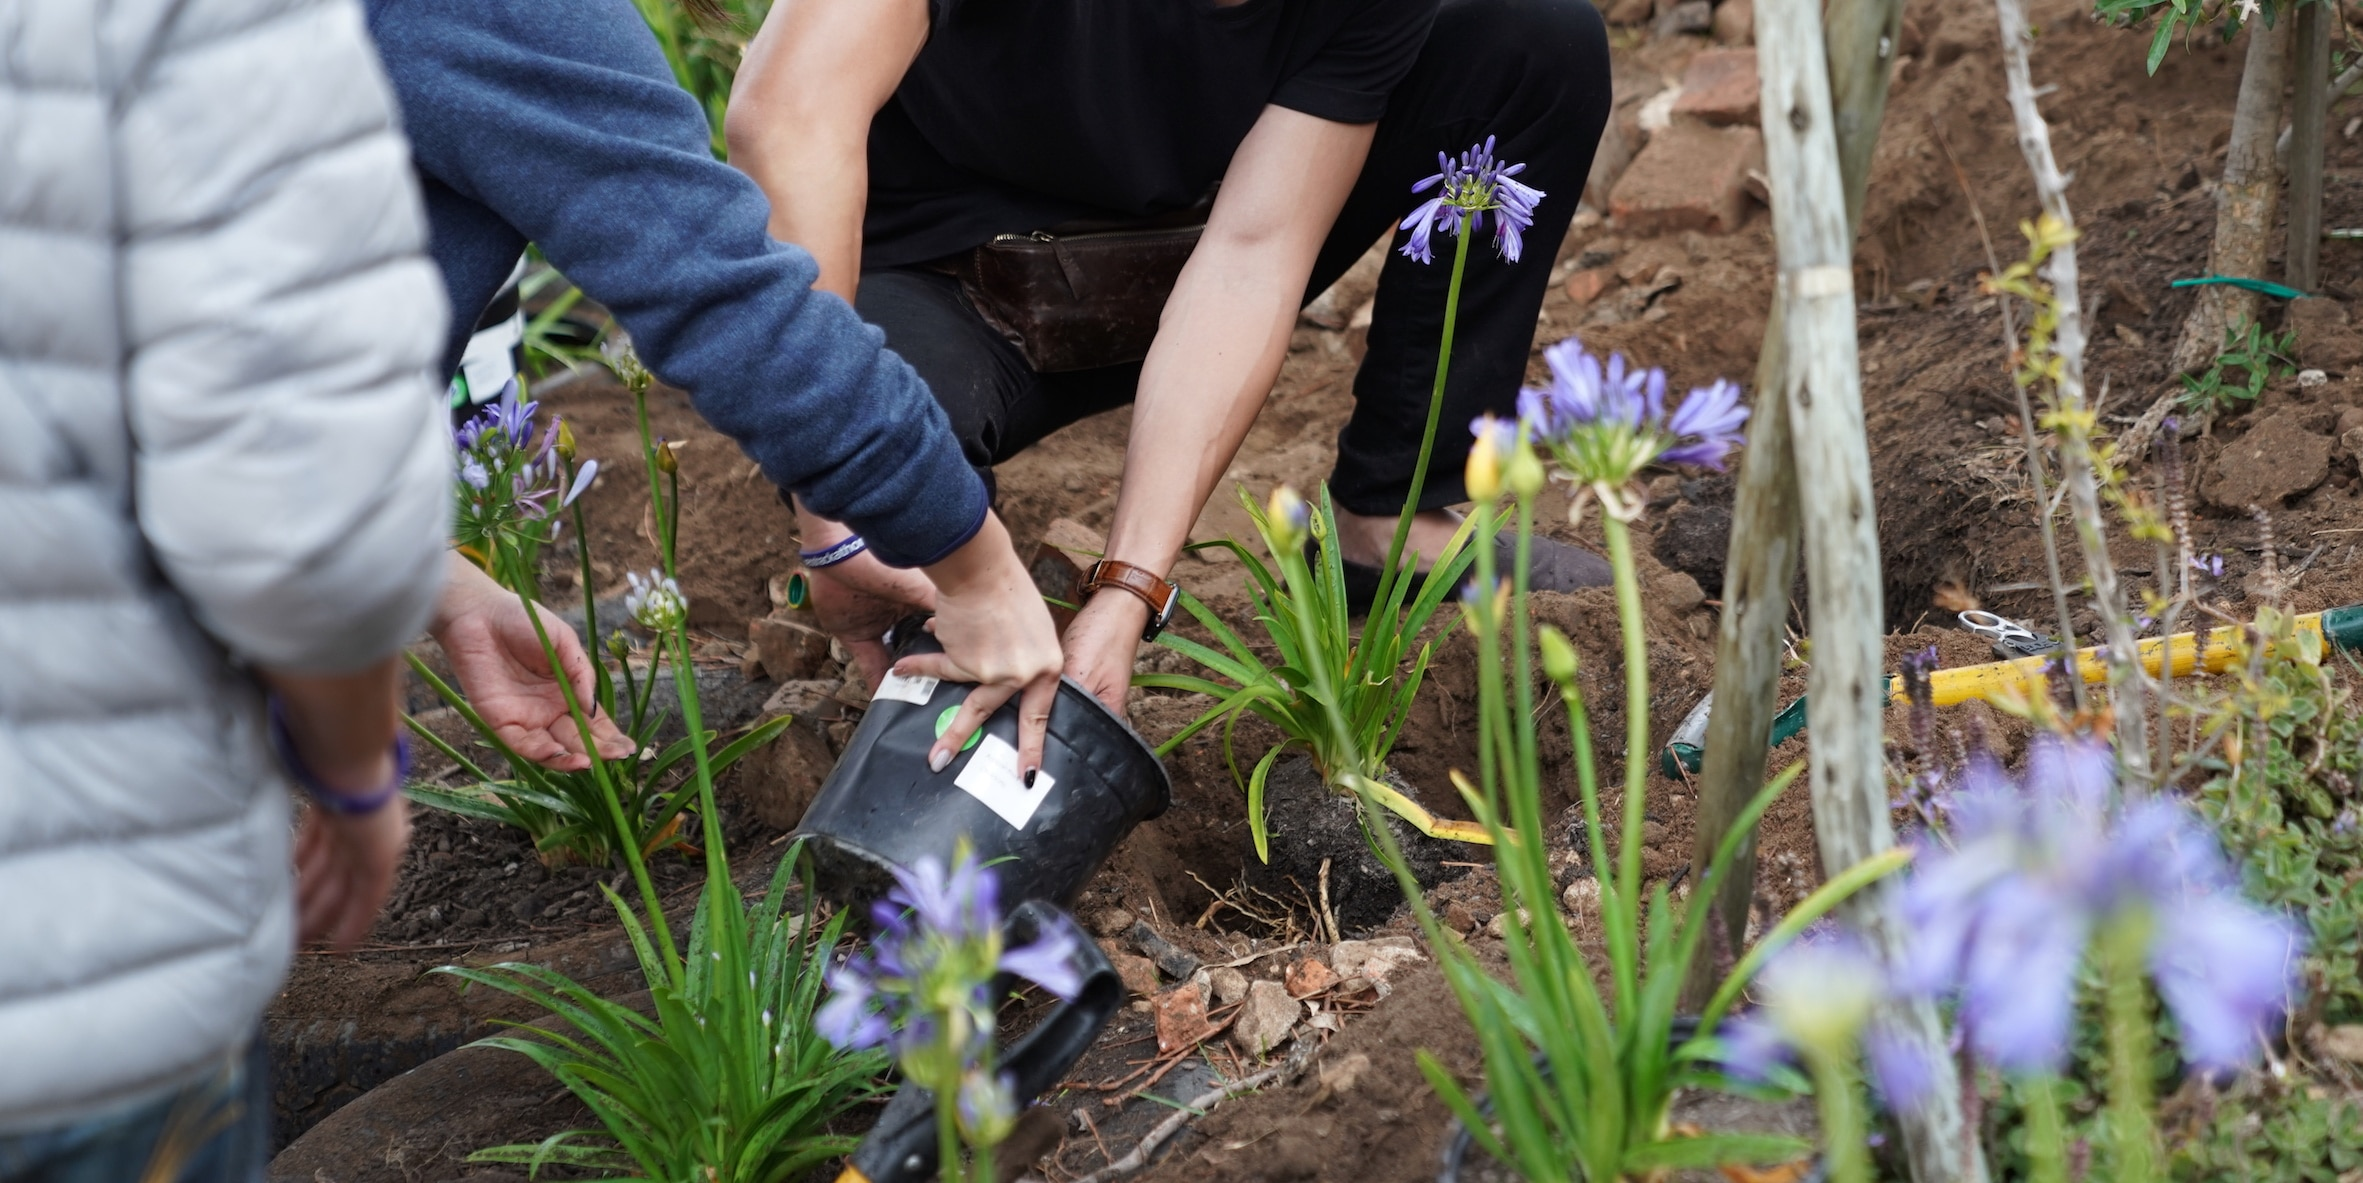 Three individuals planting flowers in a garden.